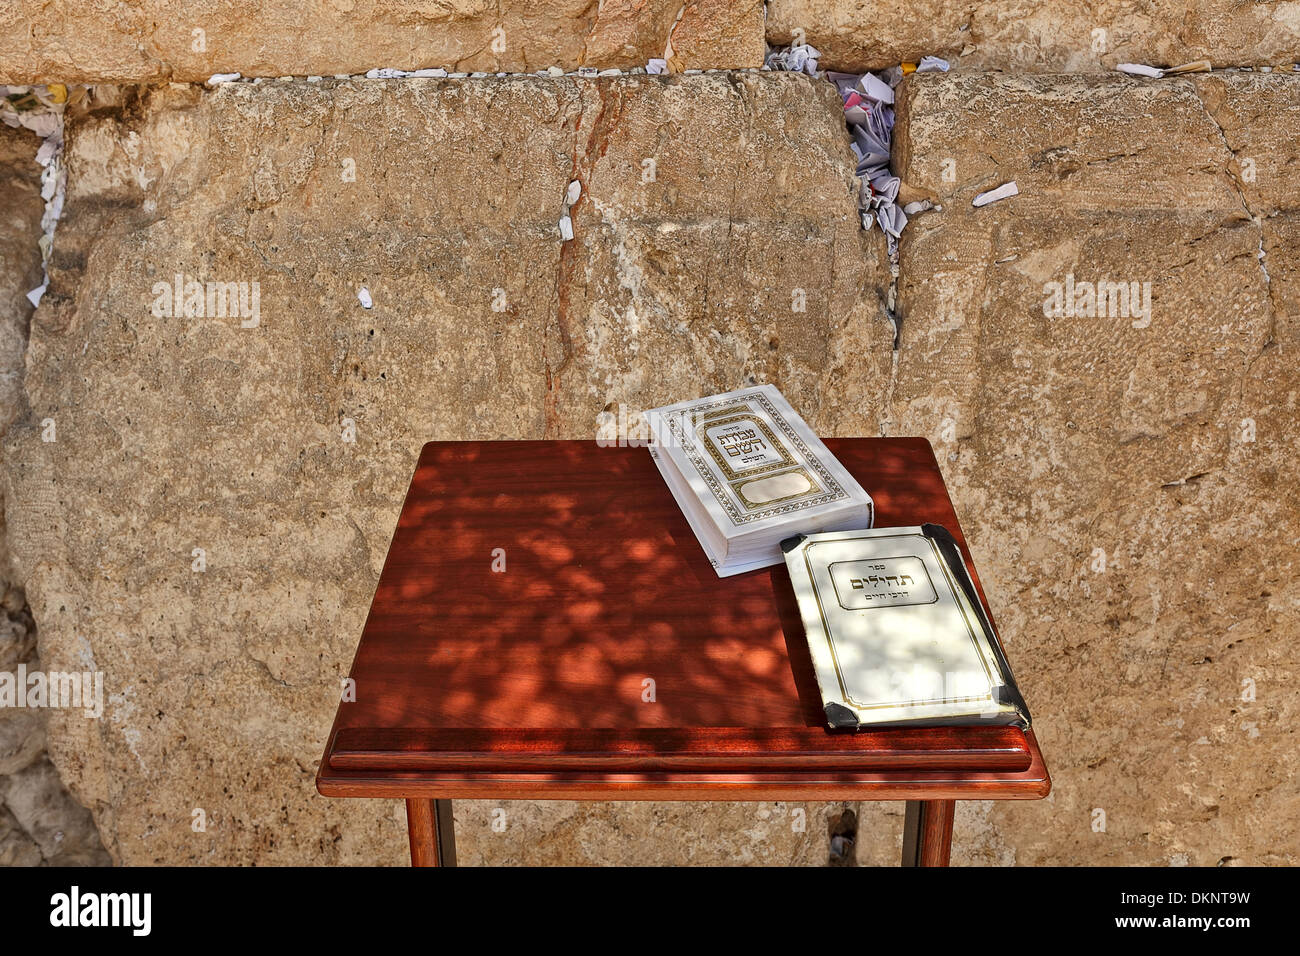 Siddur and Book of Psalms on small wooden table at Western Wall (aka Wailing Wall) in Jerusalem, Israel. - Stock Image